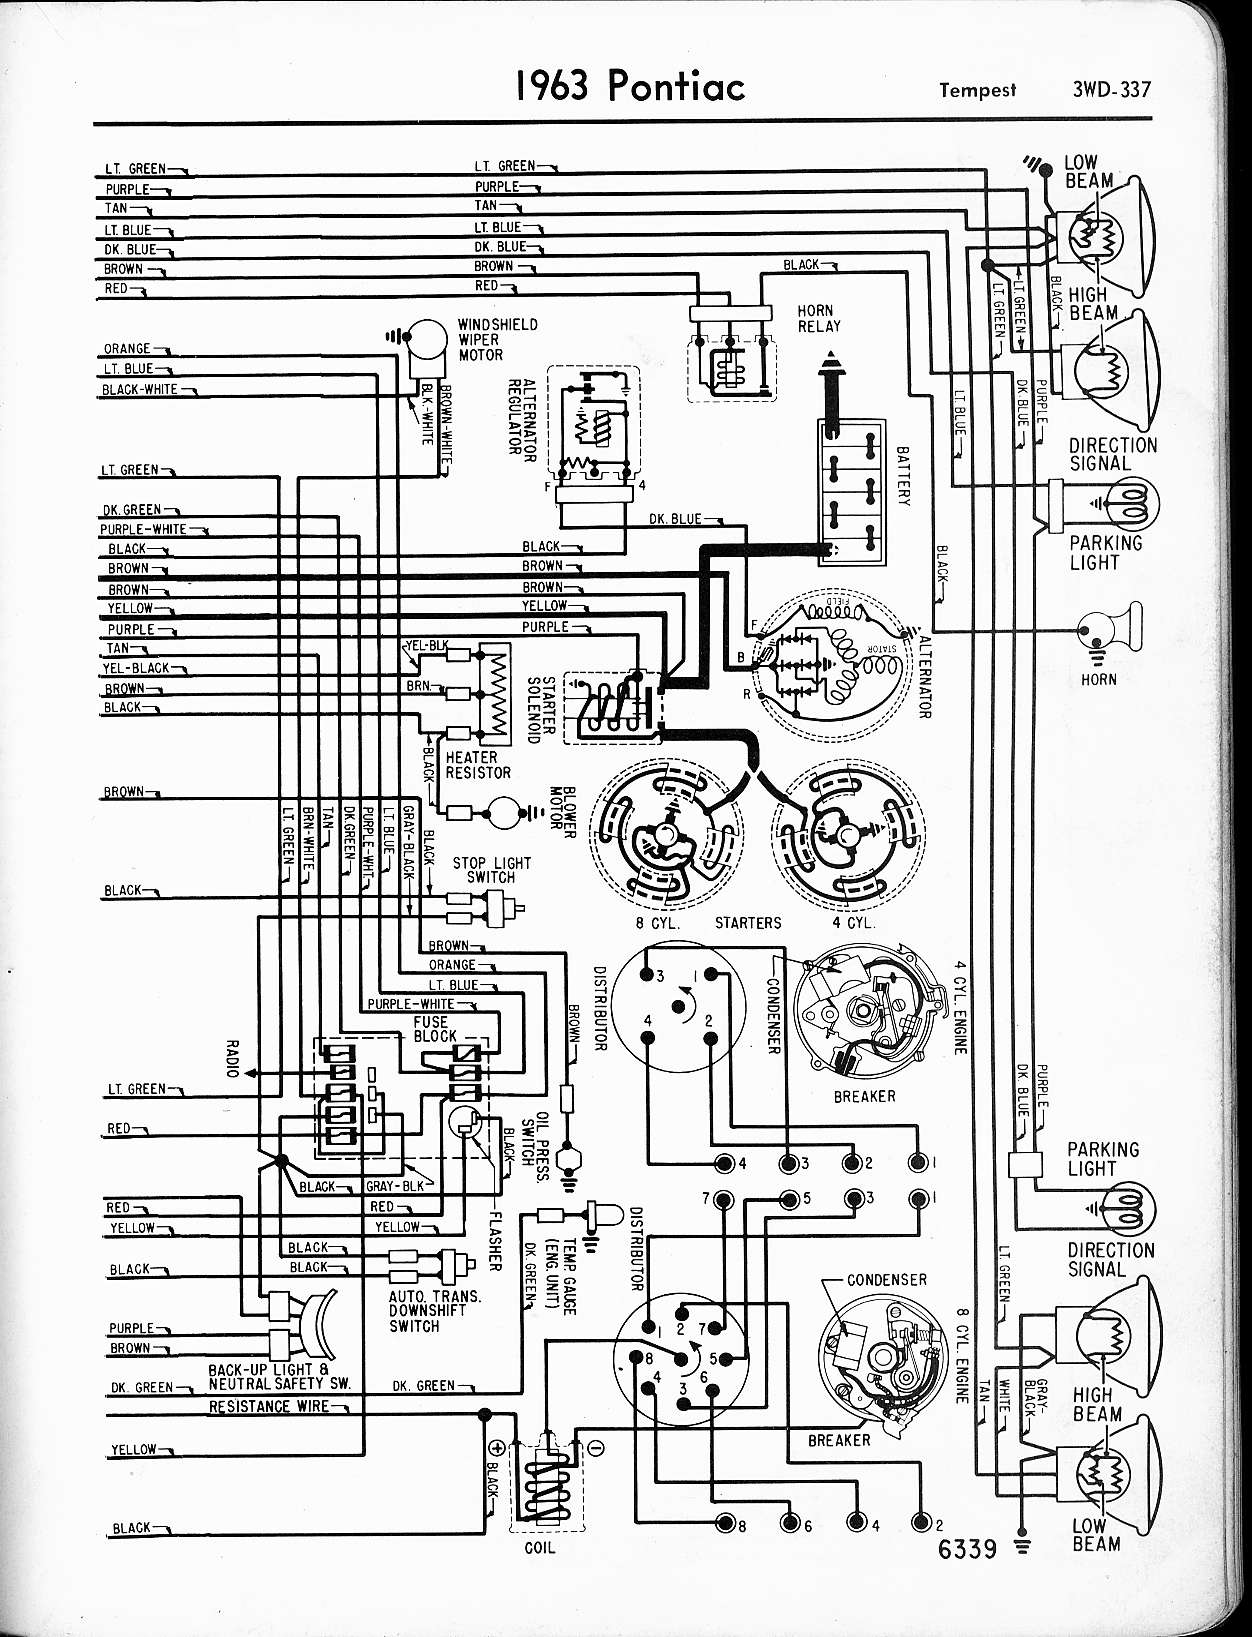 Corvette Dash Wiring Diagram Also 2011 Chevy Impala Chevrolet On 1964 Fuse Box Rh Dksnek Pw